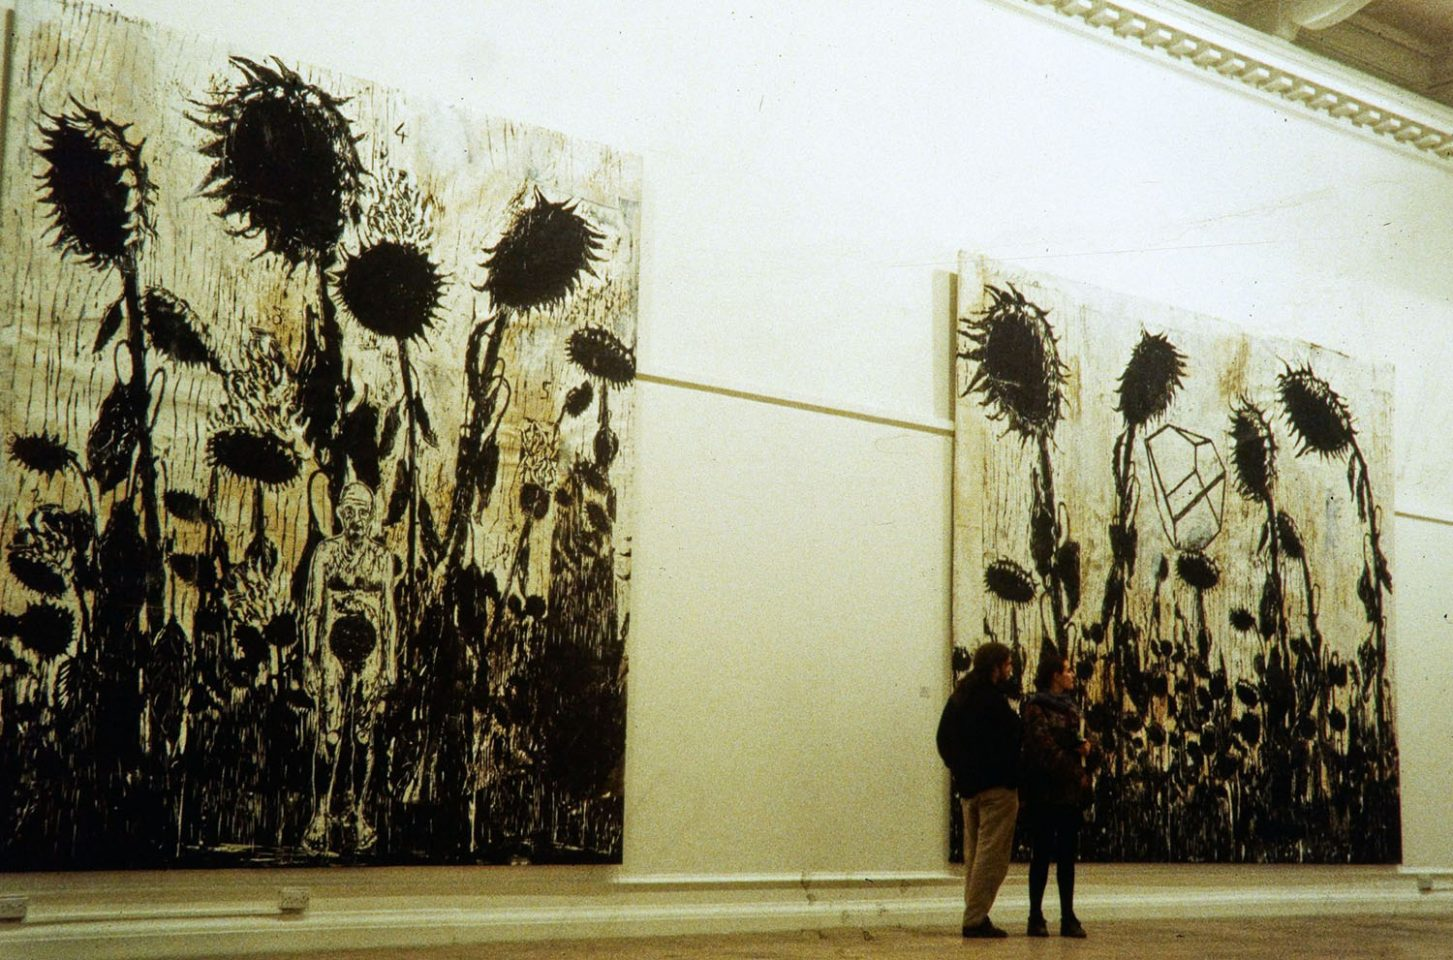 Installation view of Anselm Kiefer's exhibition I Hold All the Indias In My Hand at the South London Gallery, 1996